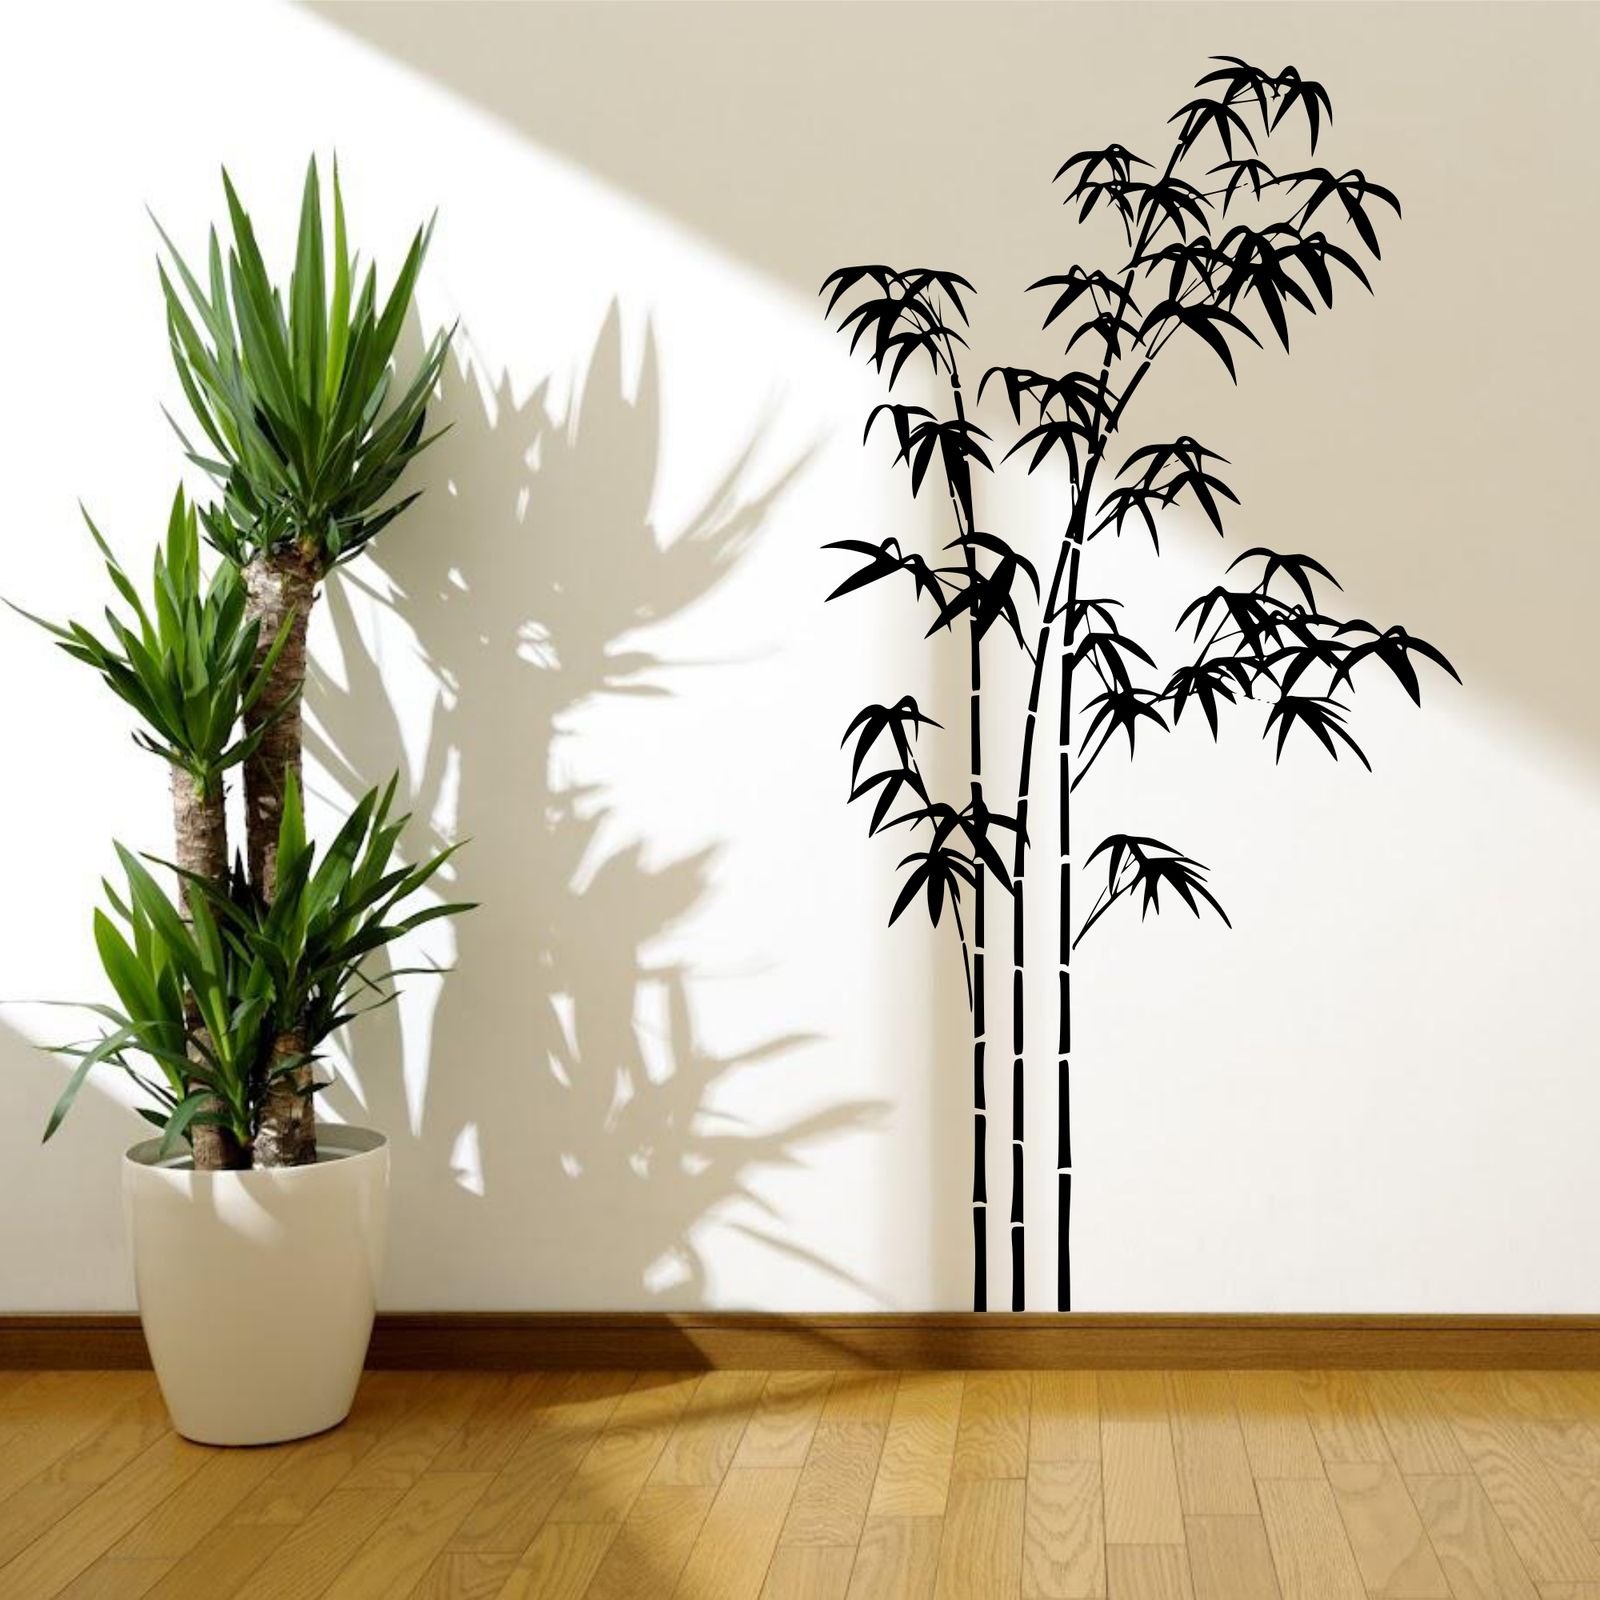 bamboo tree grass wild jungle wall sticker decal mural aliexpress com buy black wall decal dreamcatcher